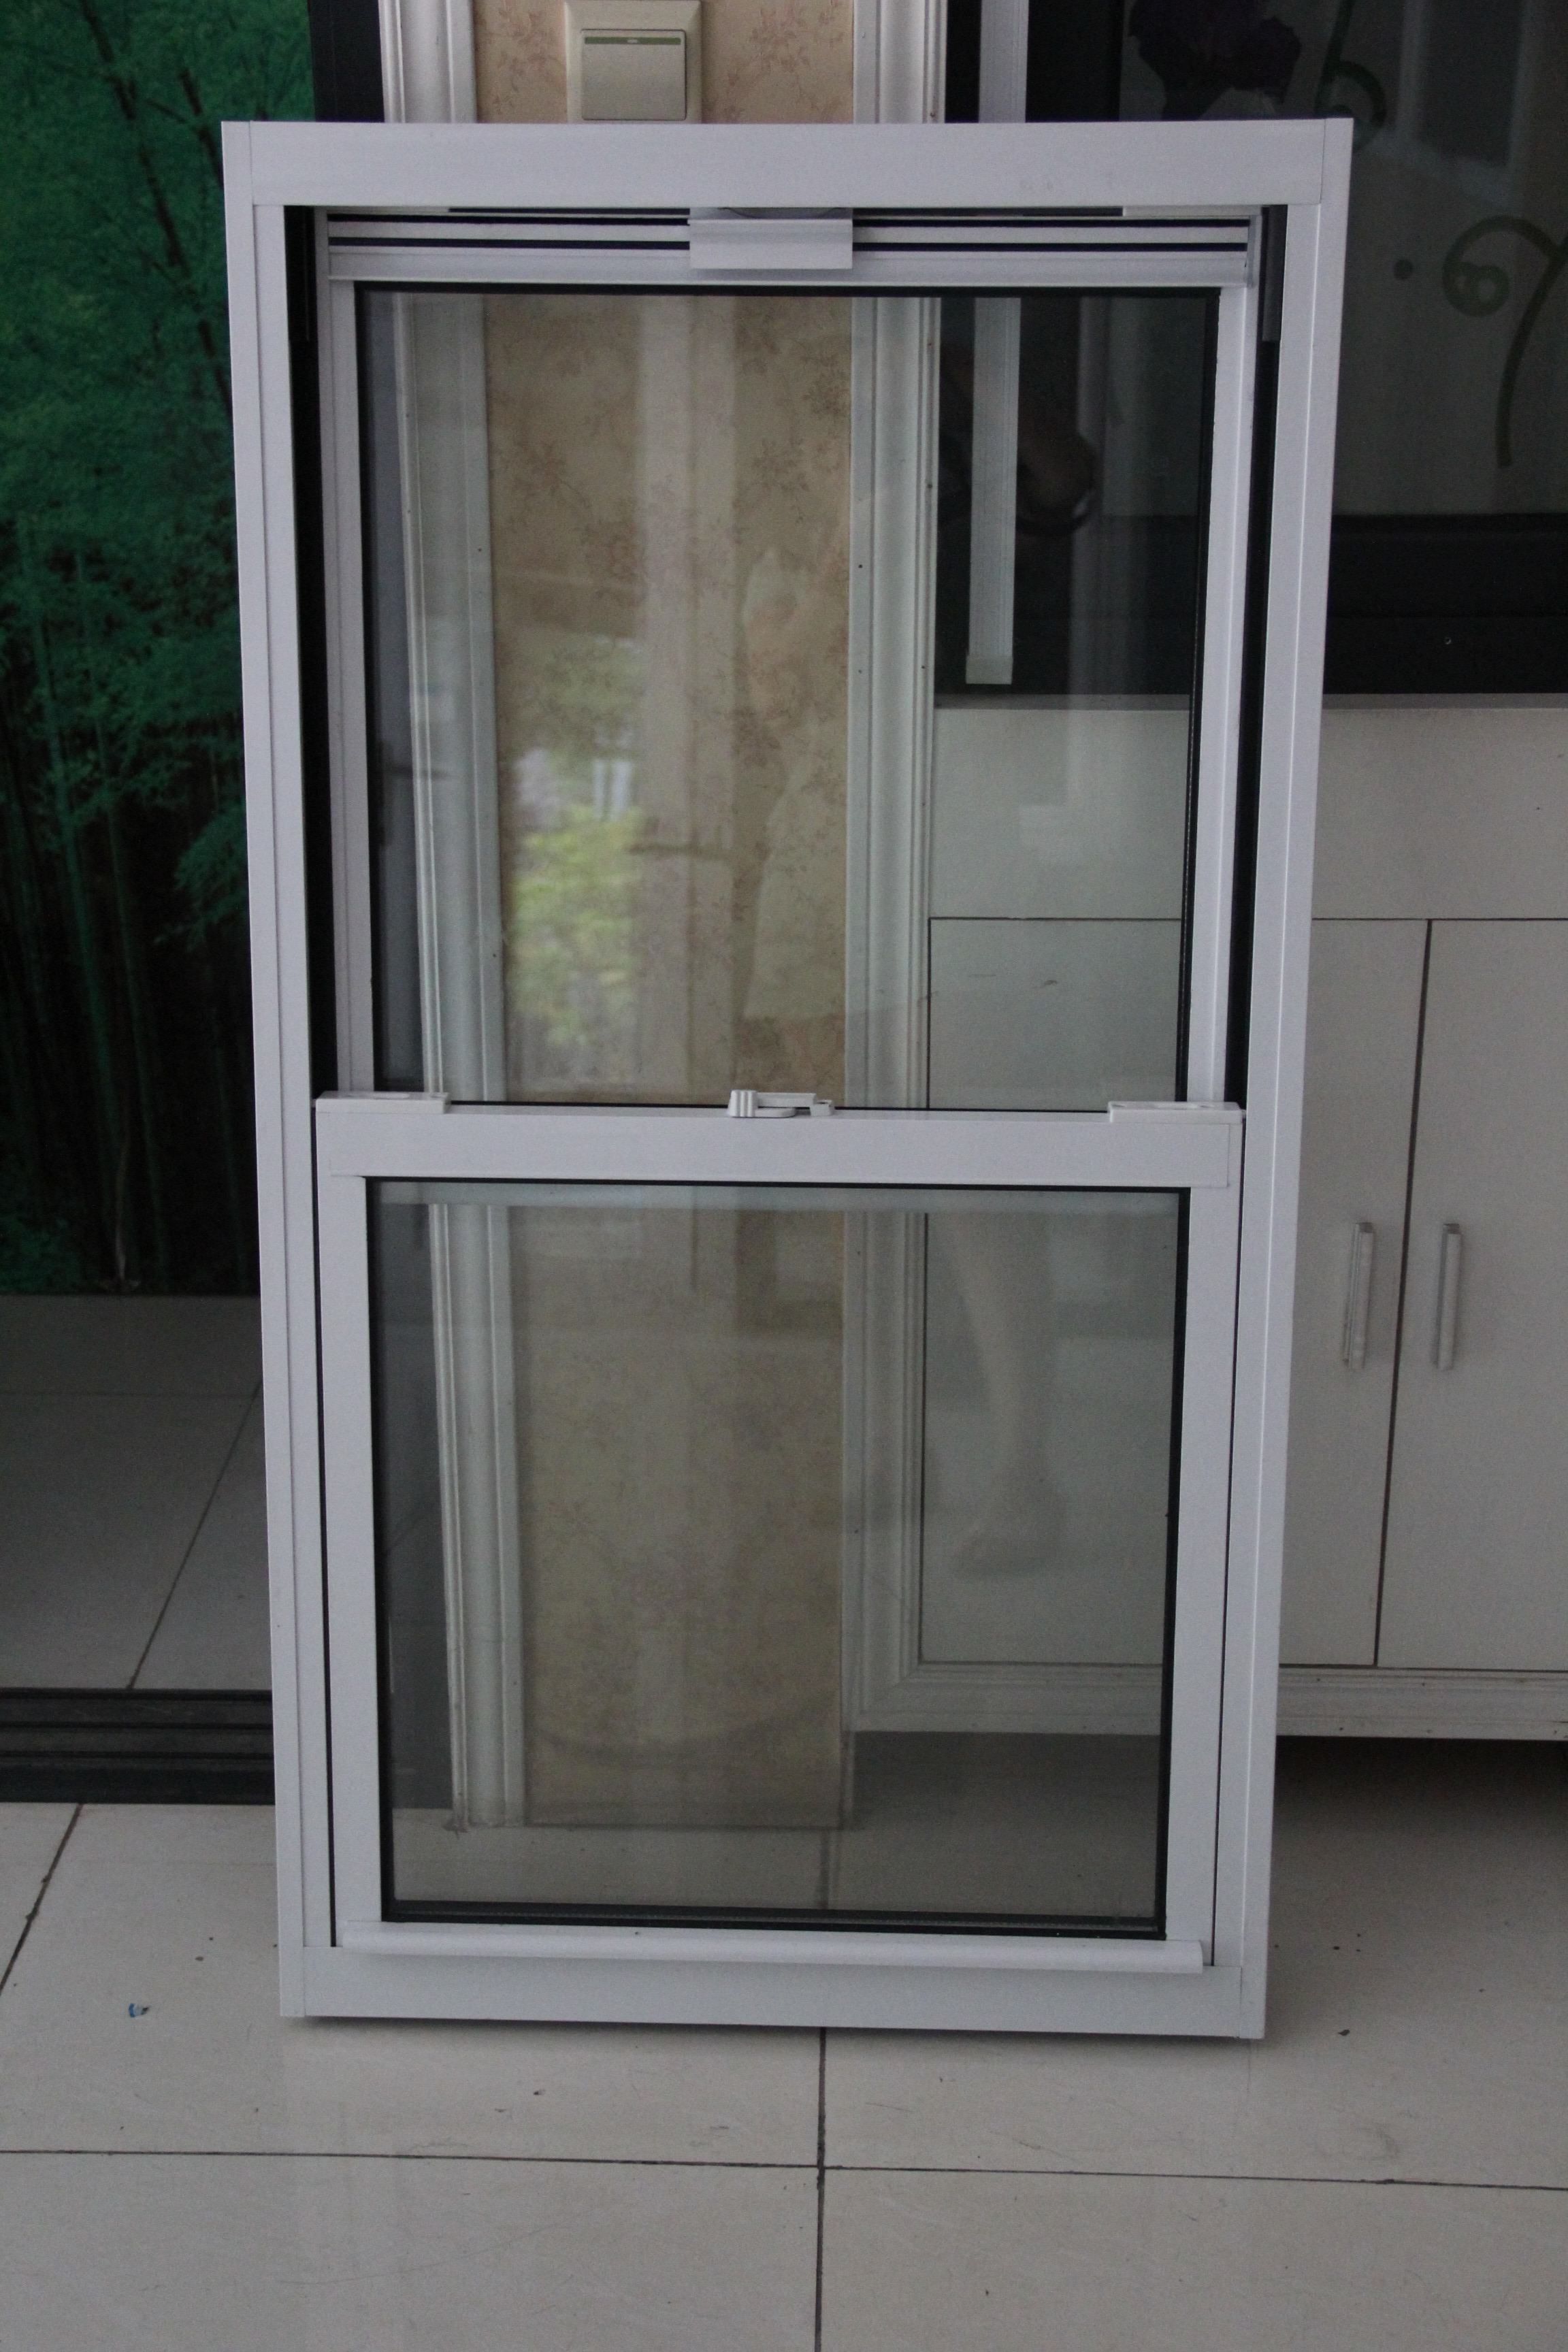 Aluminum alloy themal break double hung window American sash window